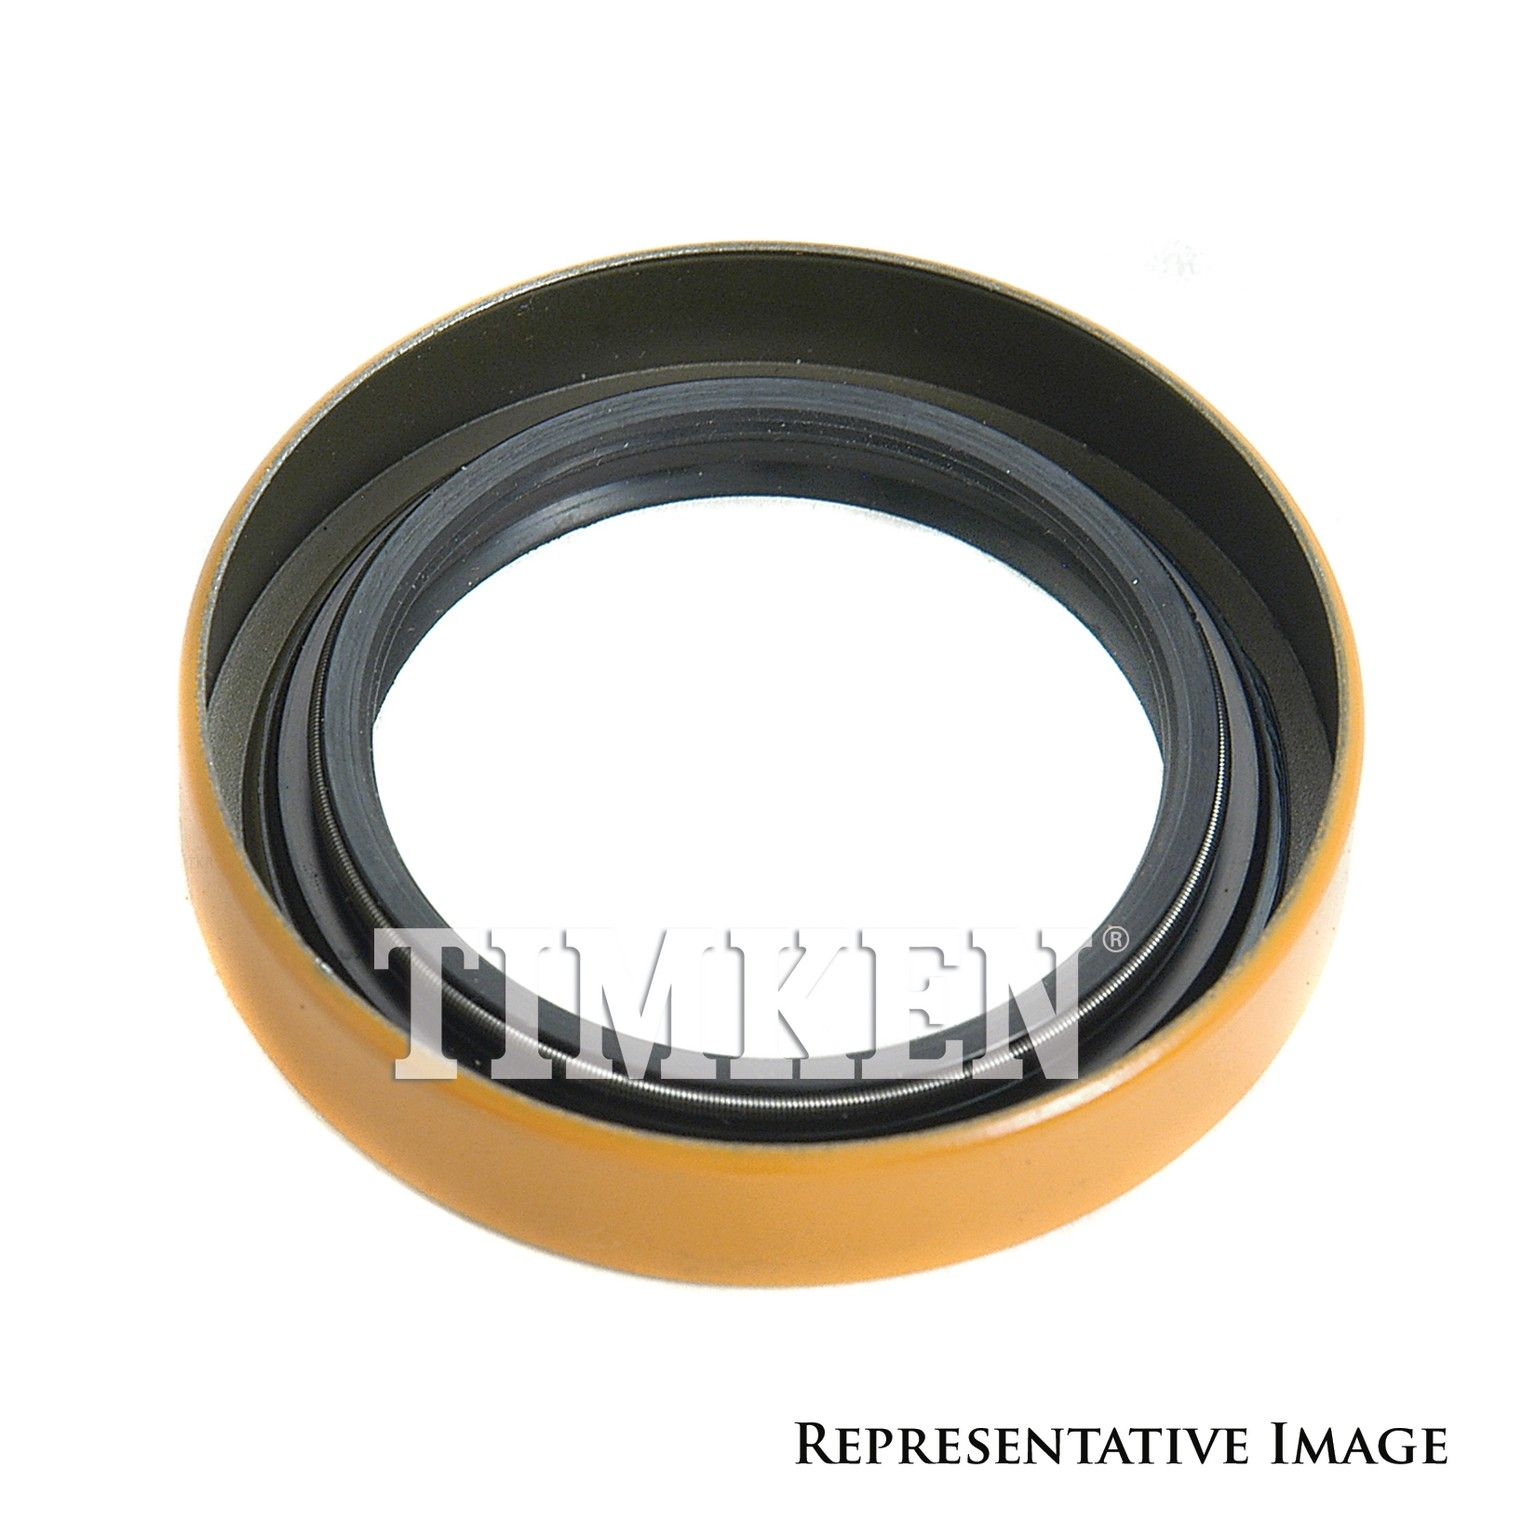 Isuzu Rodeo Differential Pinion Seal Replacement (Genuine